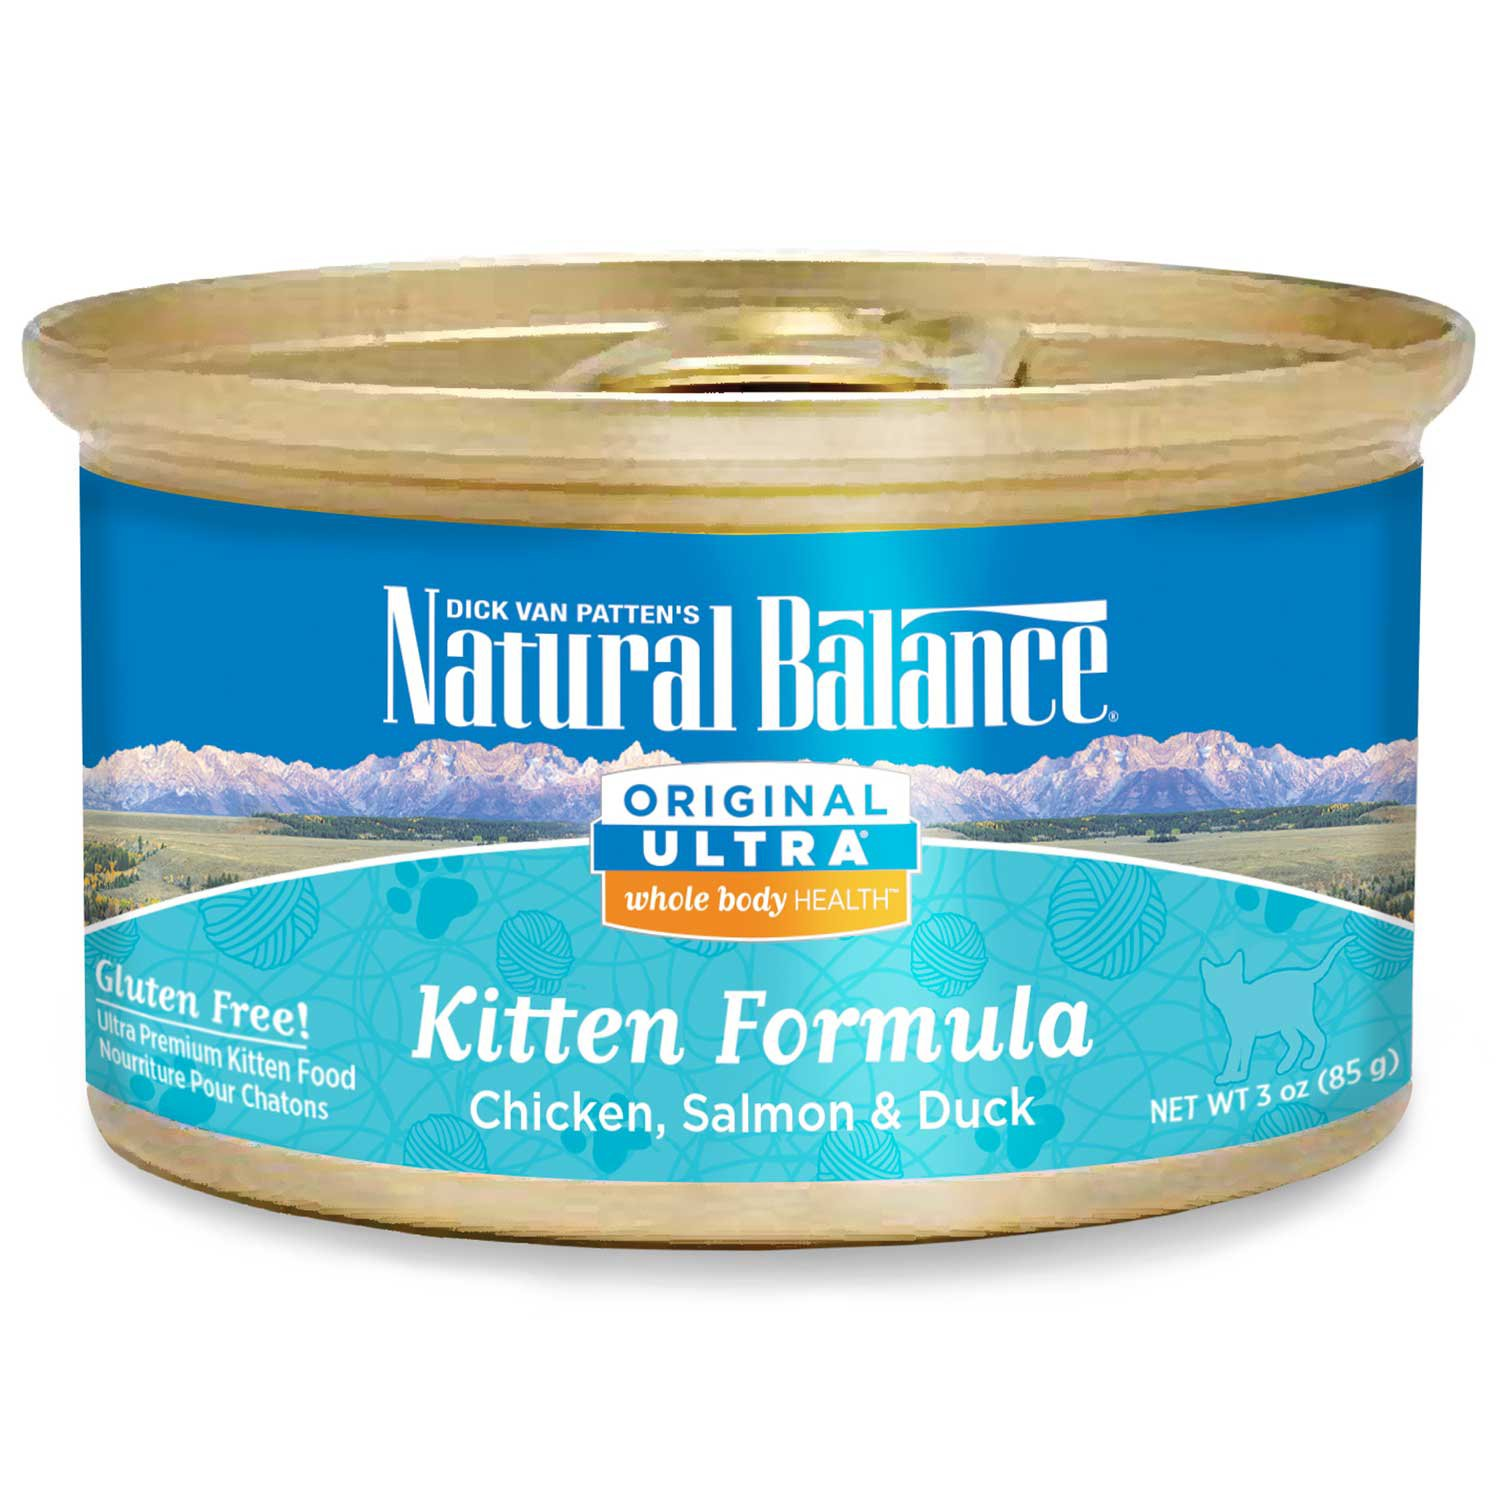 Natural Balance Ultra Whole Body Health Chicken, Salmon